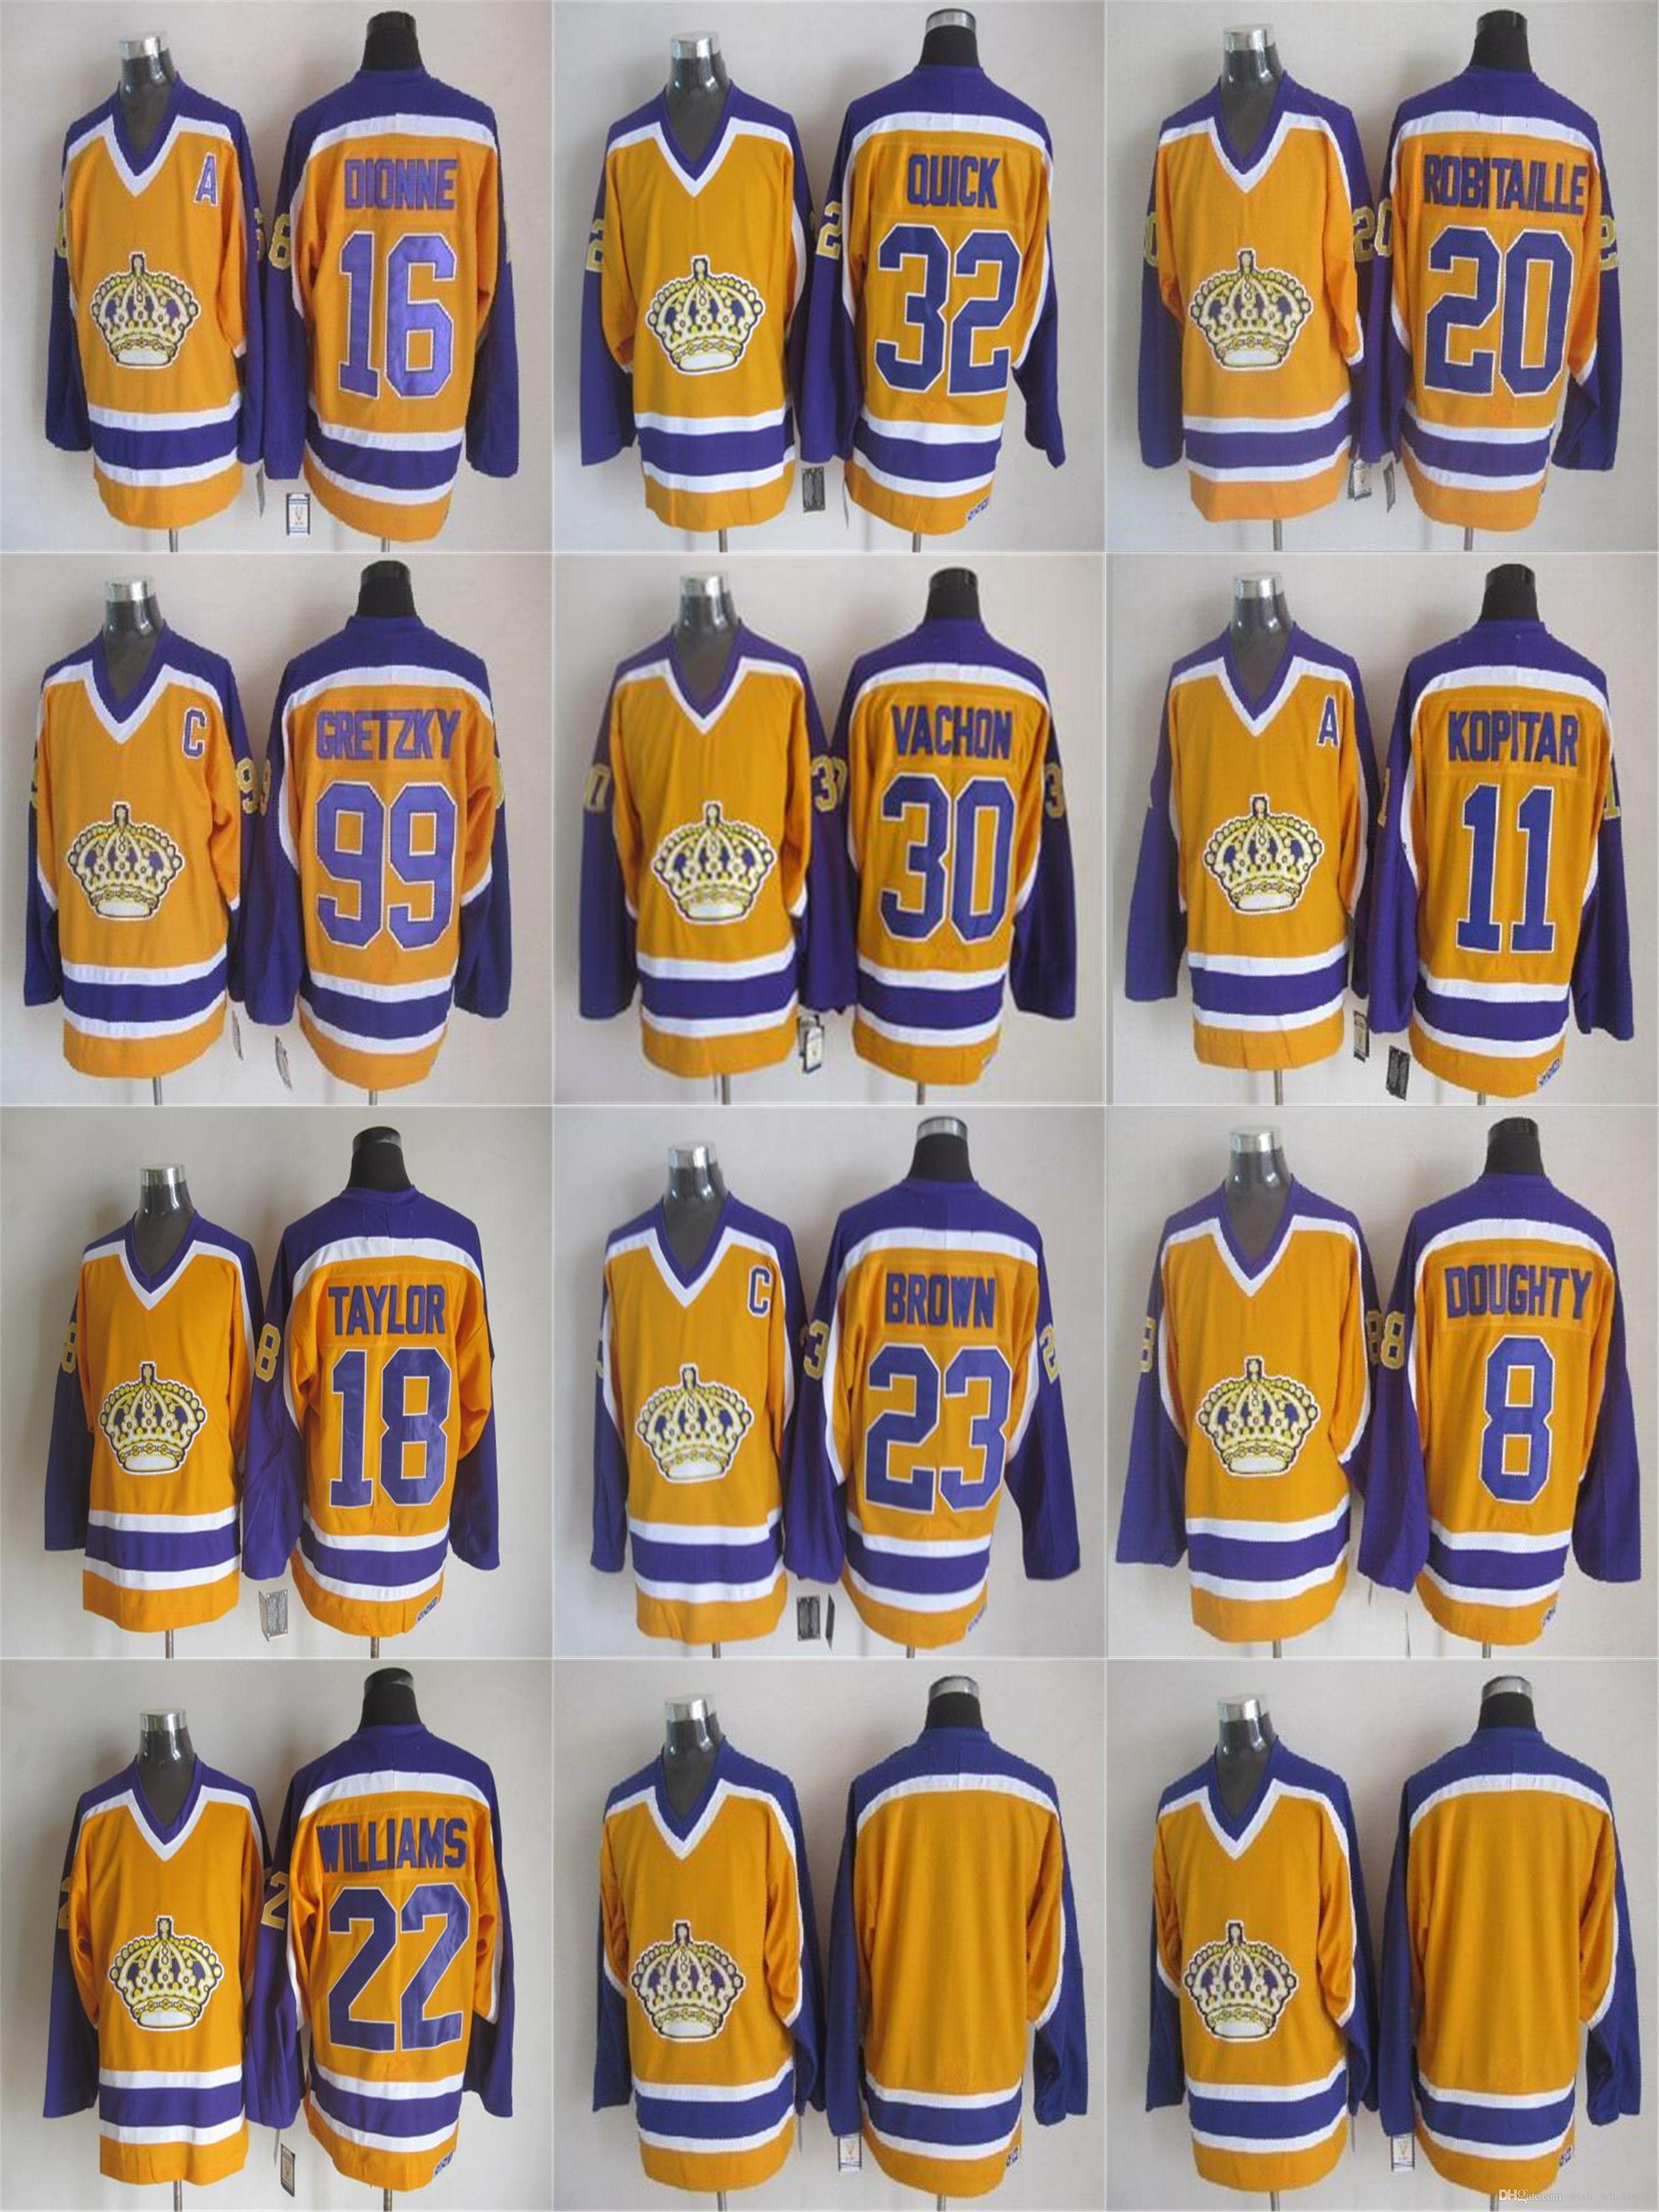 online store 9106b 17e68 Vintage CCM Wayne Gretzky Jersey Los Angeles Kings Marcel Dionne Jonathan  Quick Rogie Vachon Luc Robitaille Drew Doughty Man Hockey Jerseys